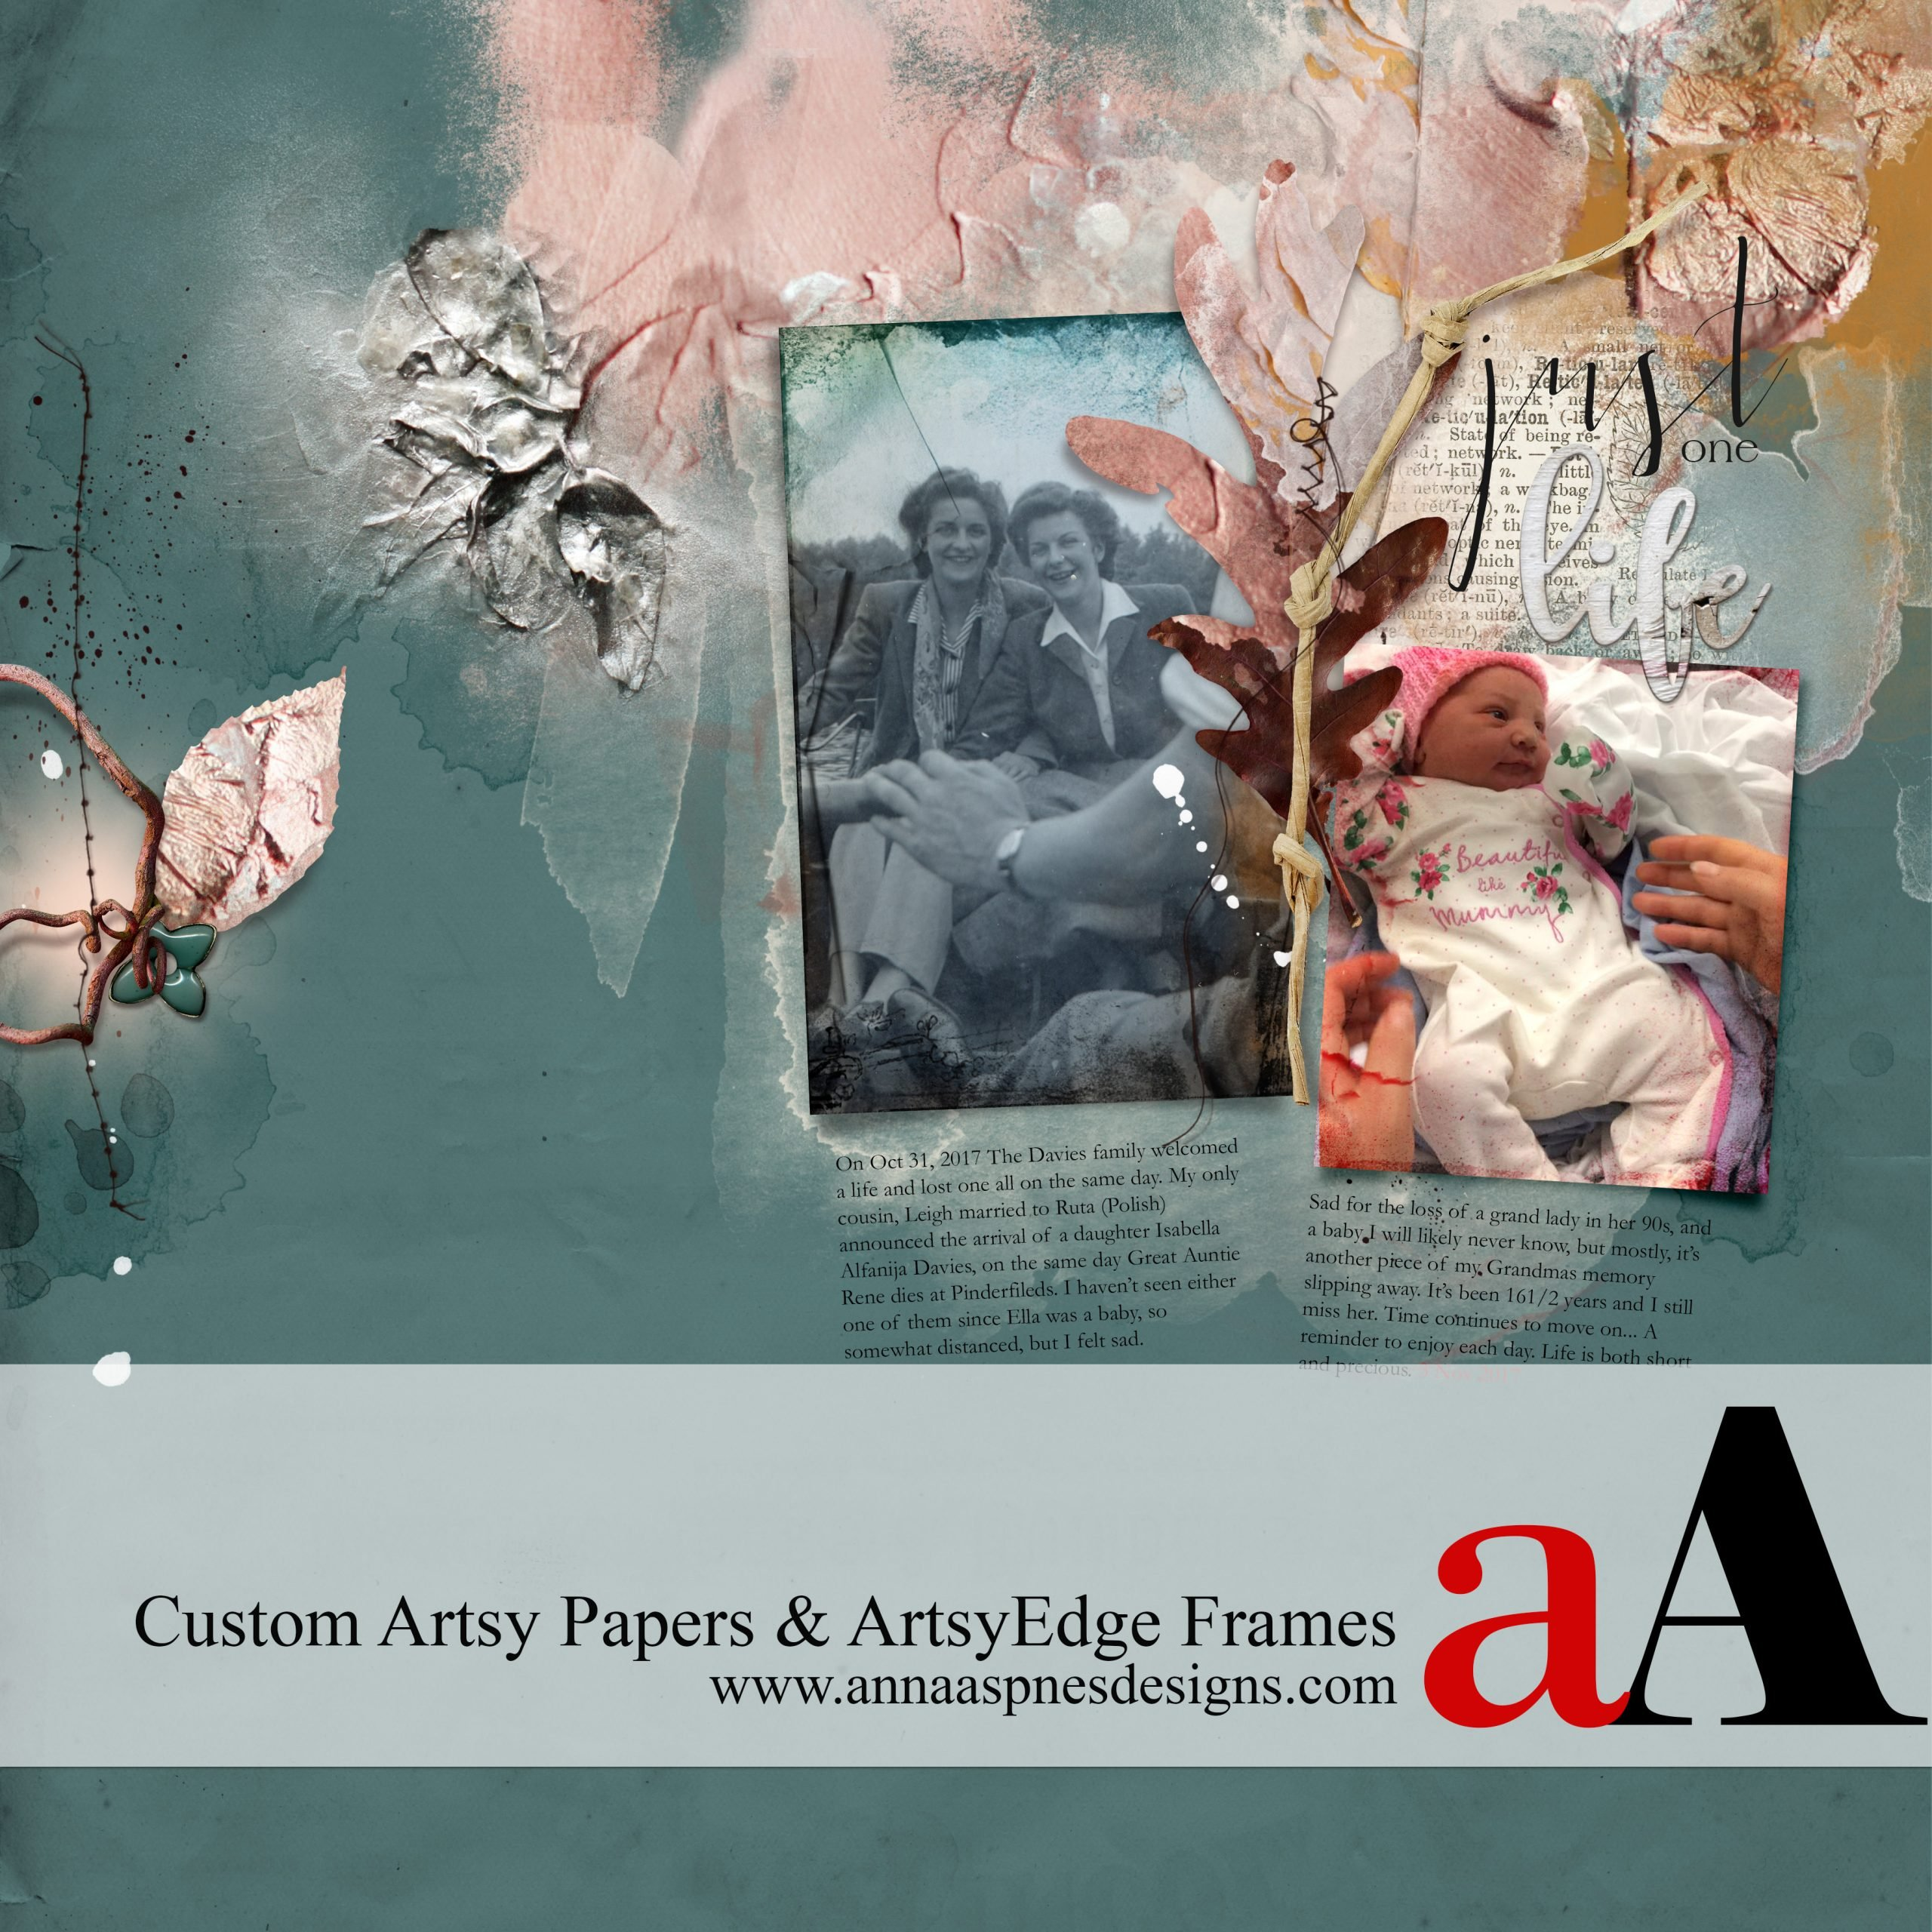 Custom Papers and ArtsyEdge Frames Video